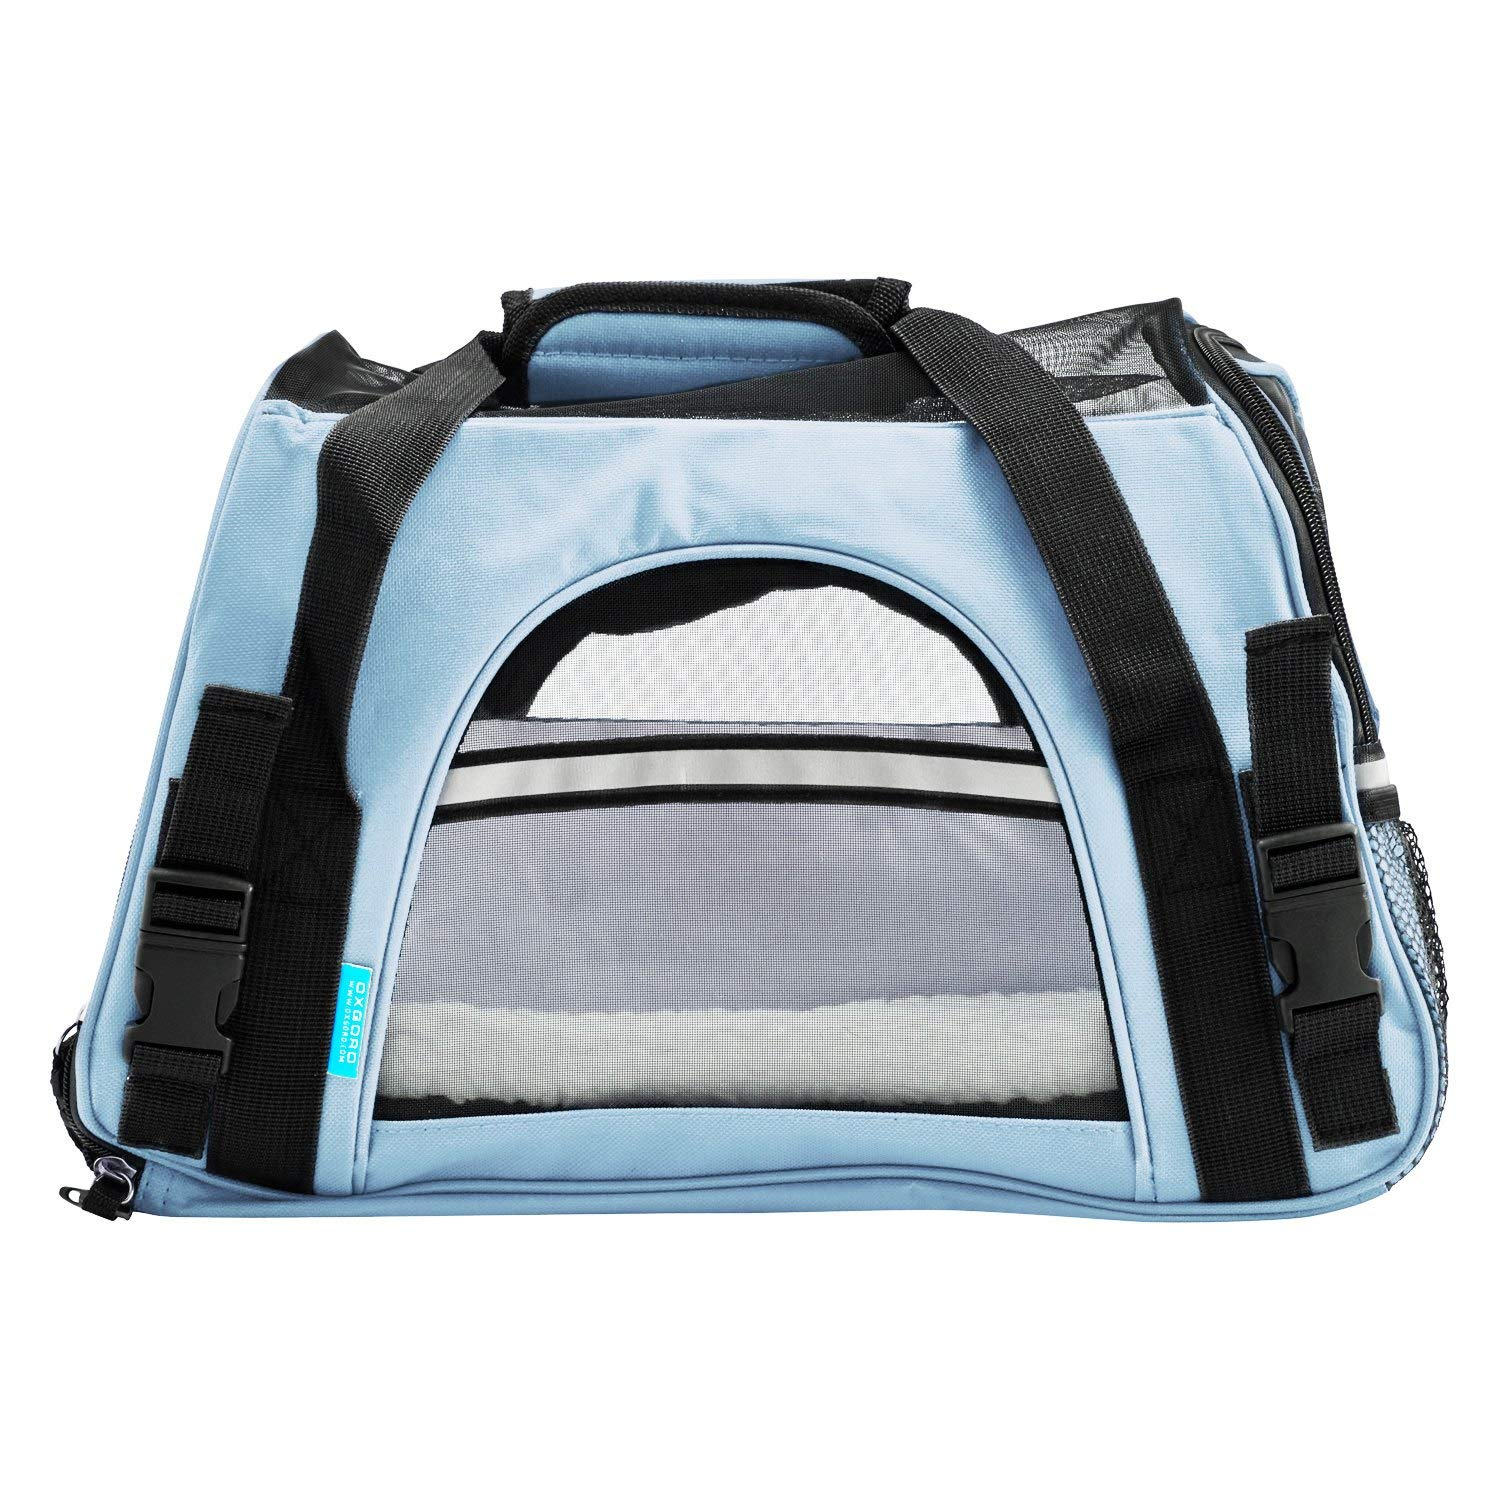 Small Soft Sided Kennel Spinach Green 2016 Newly Designed Model OxGord Airline Approved Pet Carriers w//Fleece Bed For Dog /& Cat